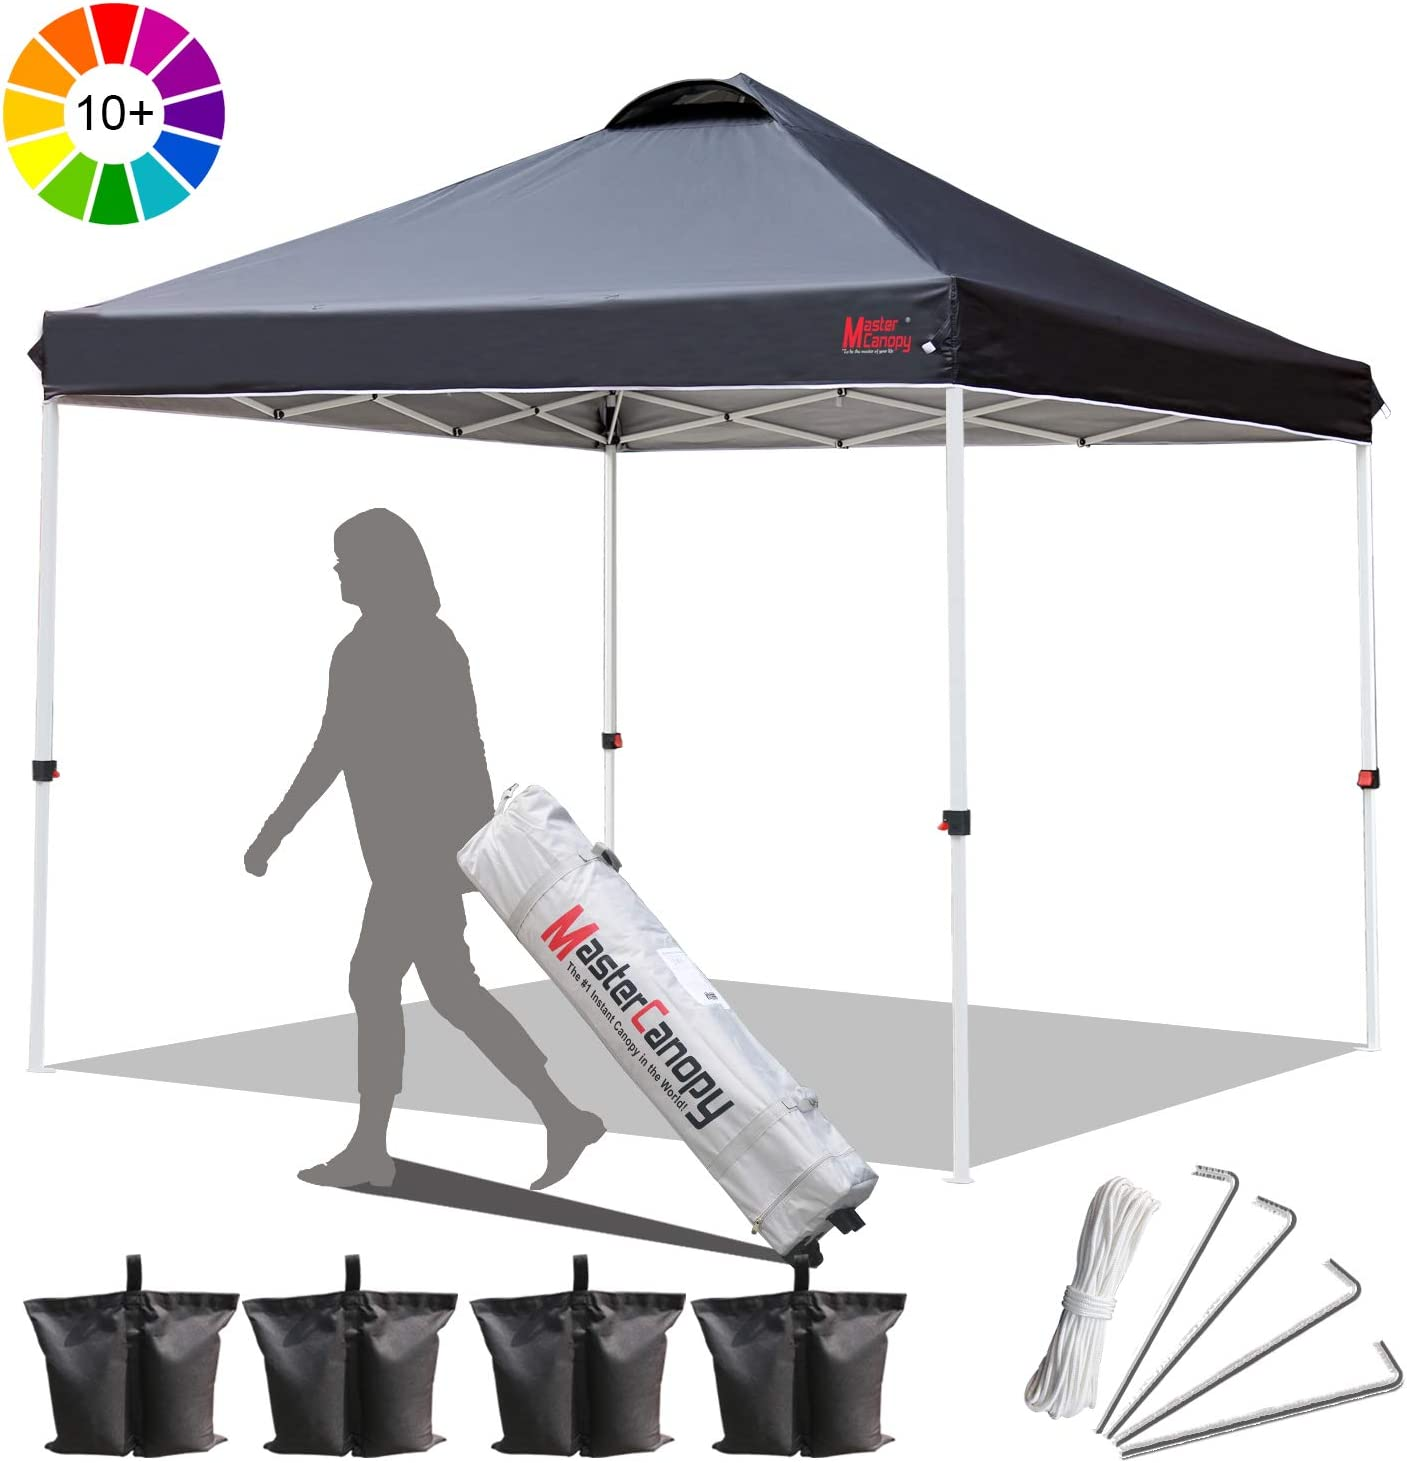 MasterCanopy Compact Gazebo Pop up Gazebo Marquee Tent Portable Shade Instant Folding Better Air Circulation Canopy with Wheeled Bag,x4 Canopy Sandbags,x4 Tent Stakes 2x2M,Black